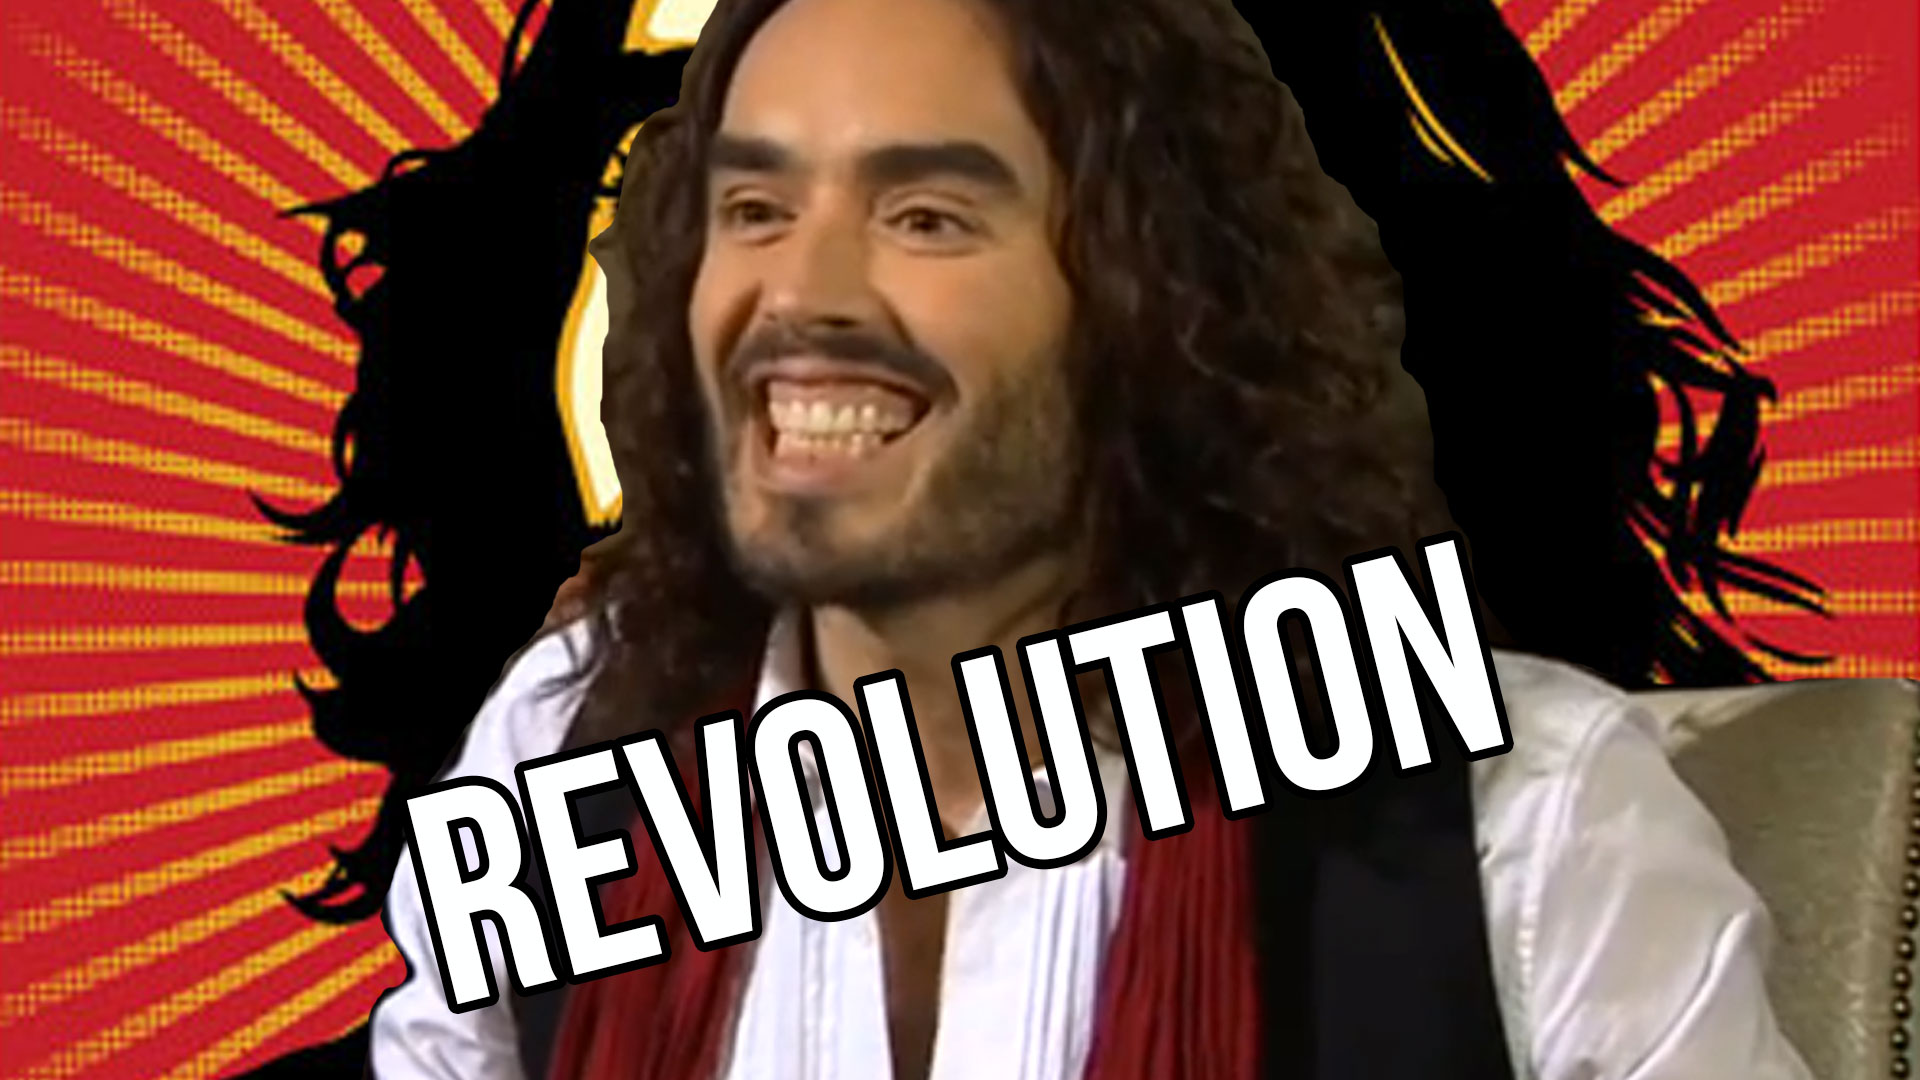 Russell Brand May Have Started a Revolution